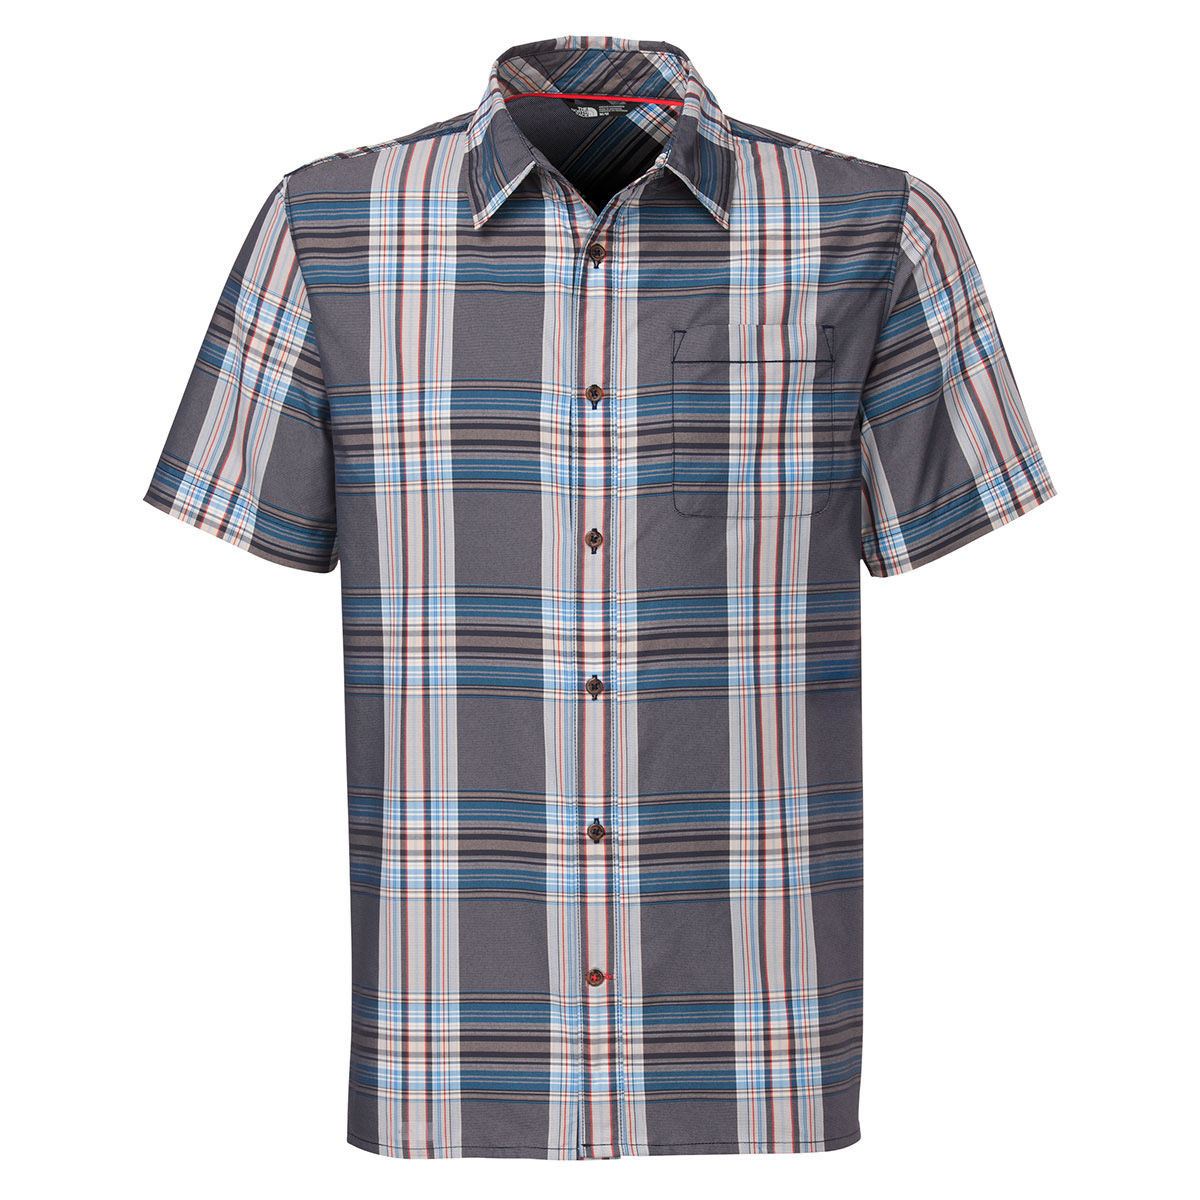 The North Face Short-Sleeve Pacific Coast Shirt